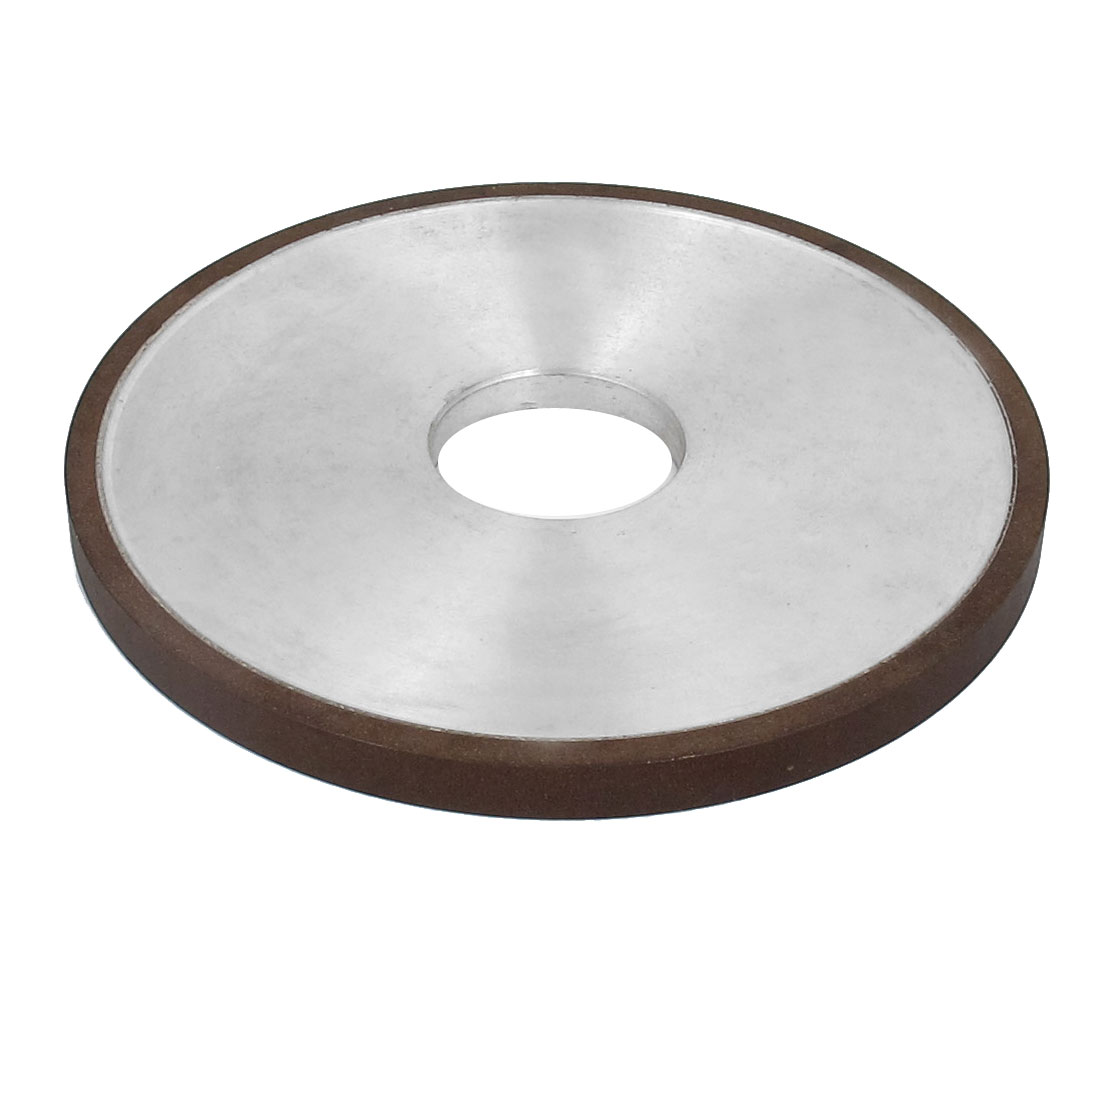 125mmx32x8x4mm Plain Parallel Diamond Grinding Wheel